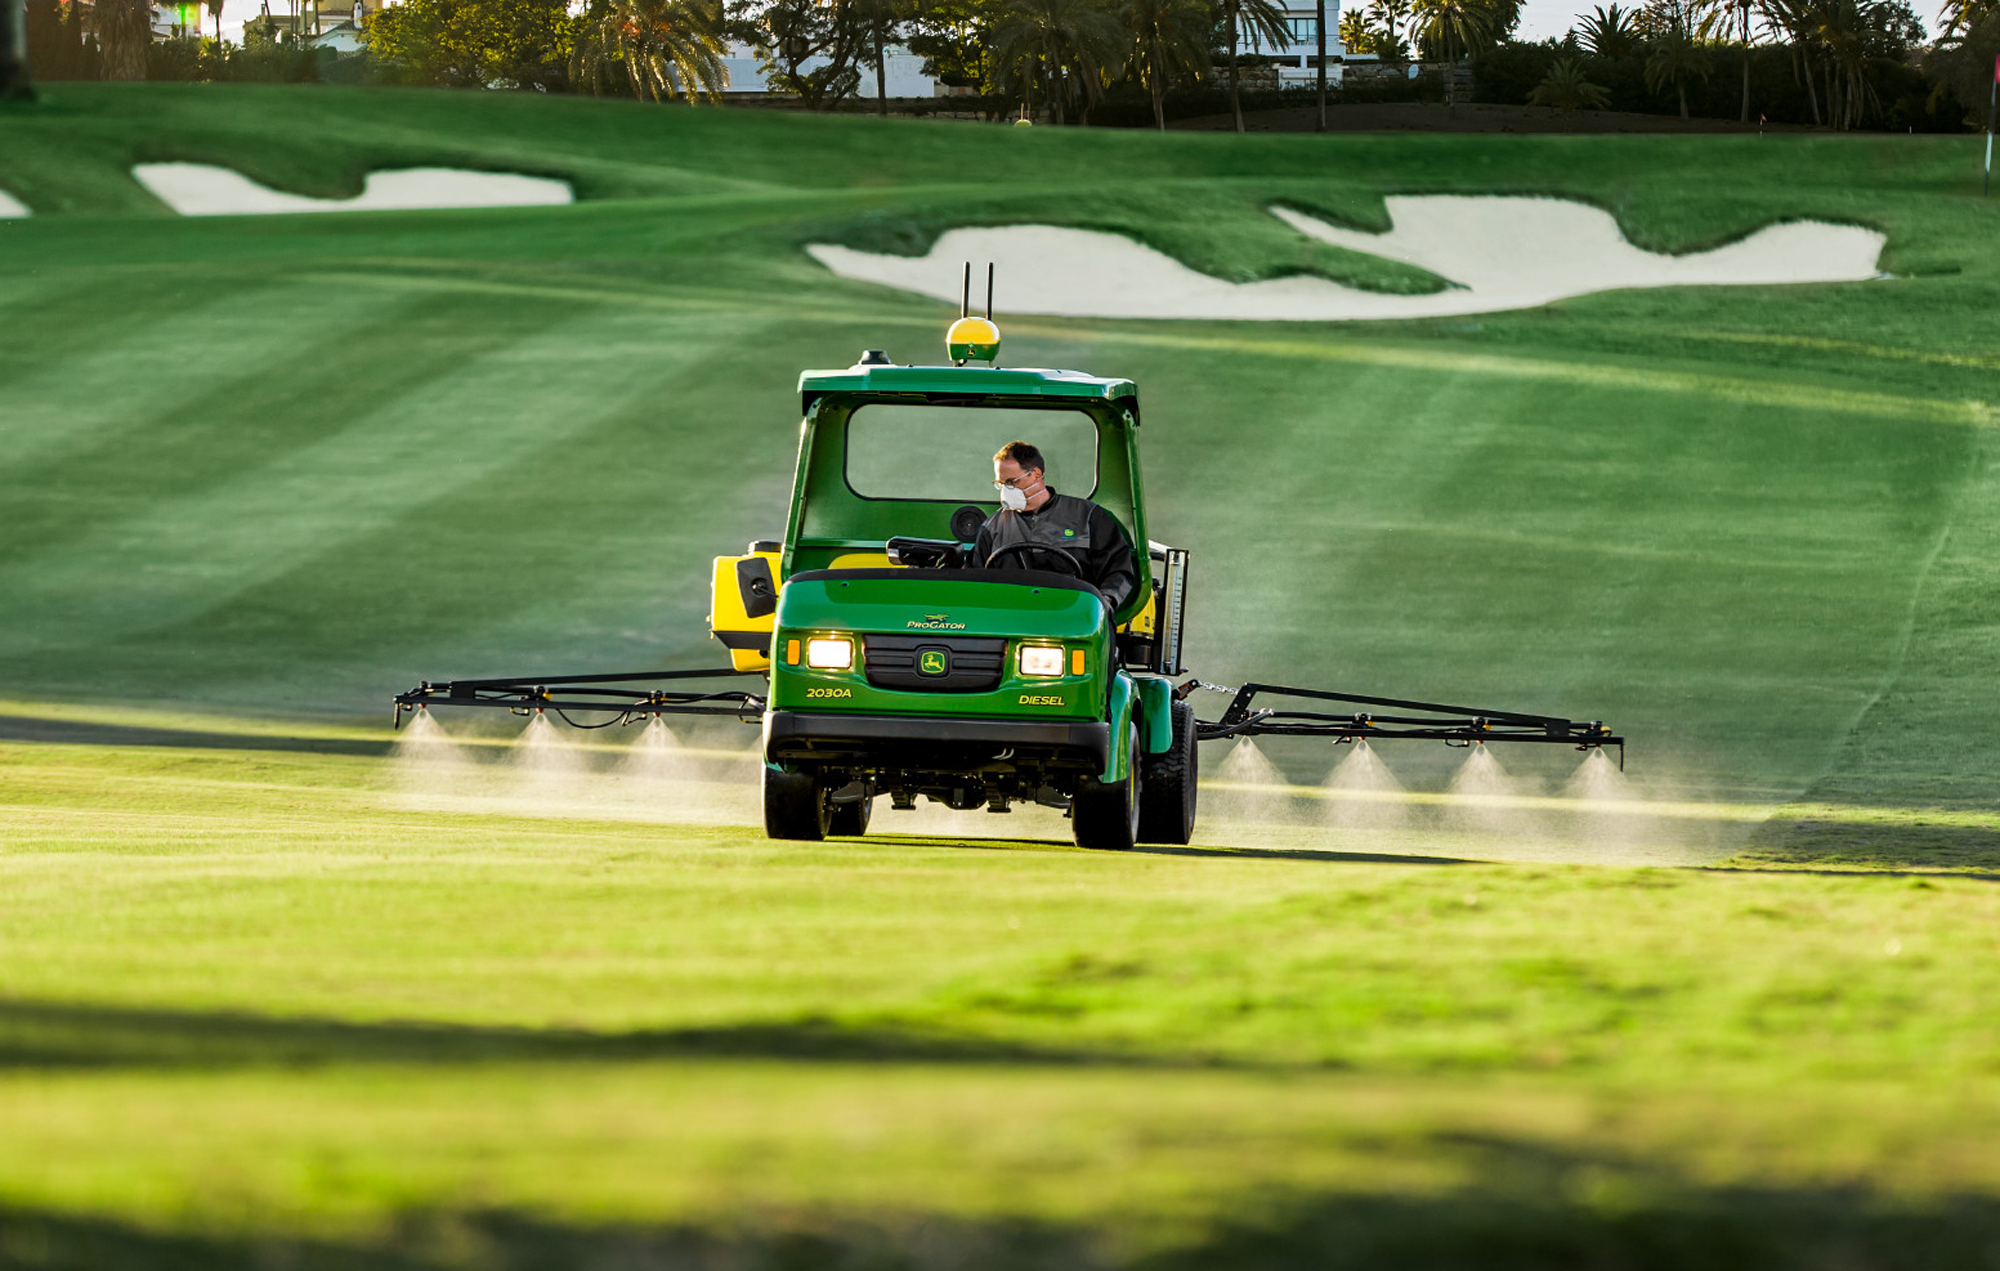 The precision spraying revolution starts at BTME